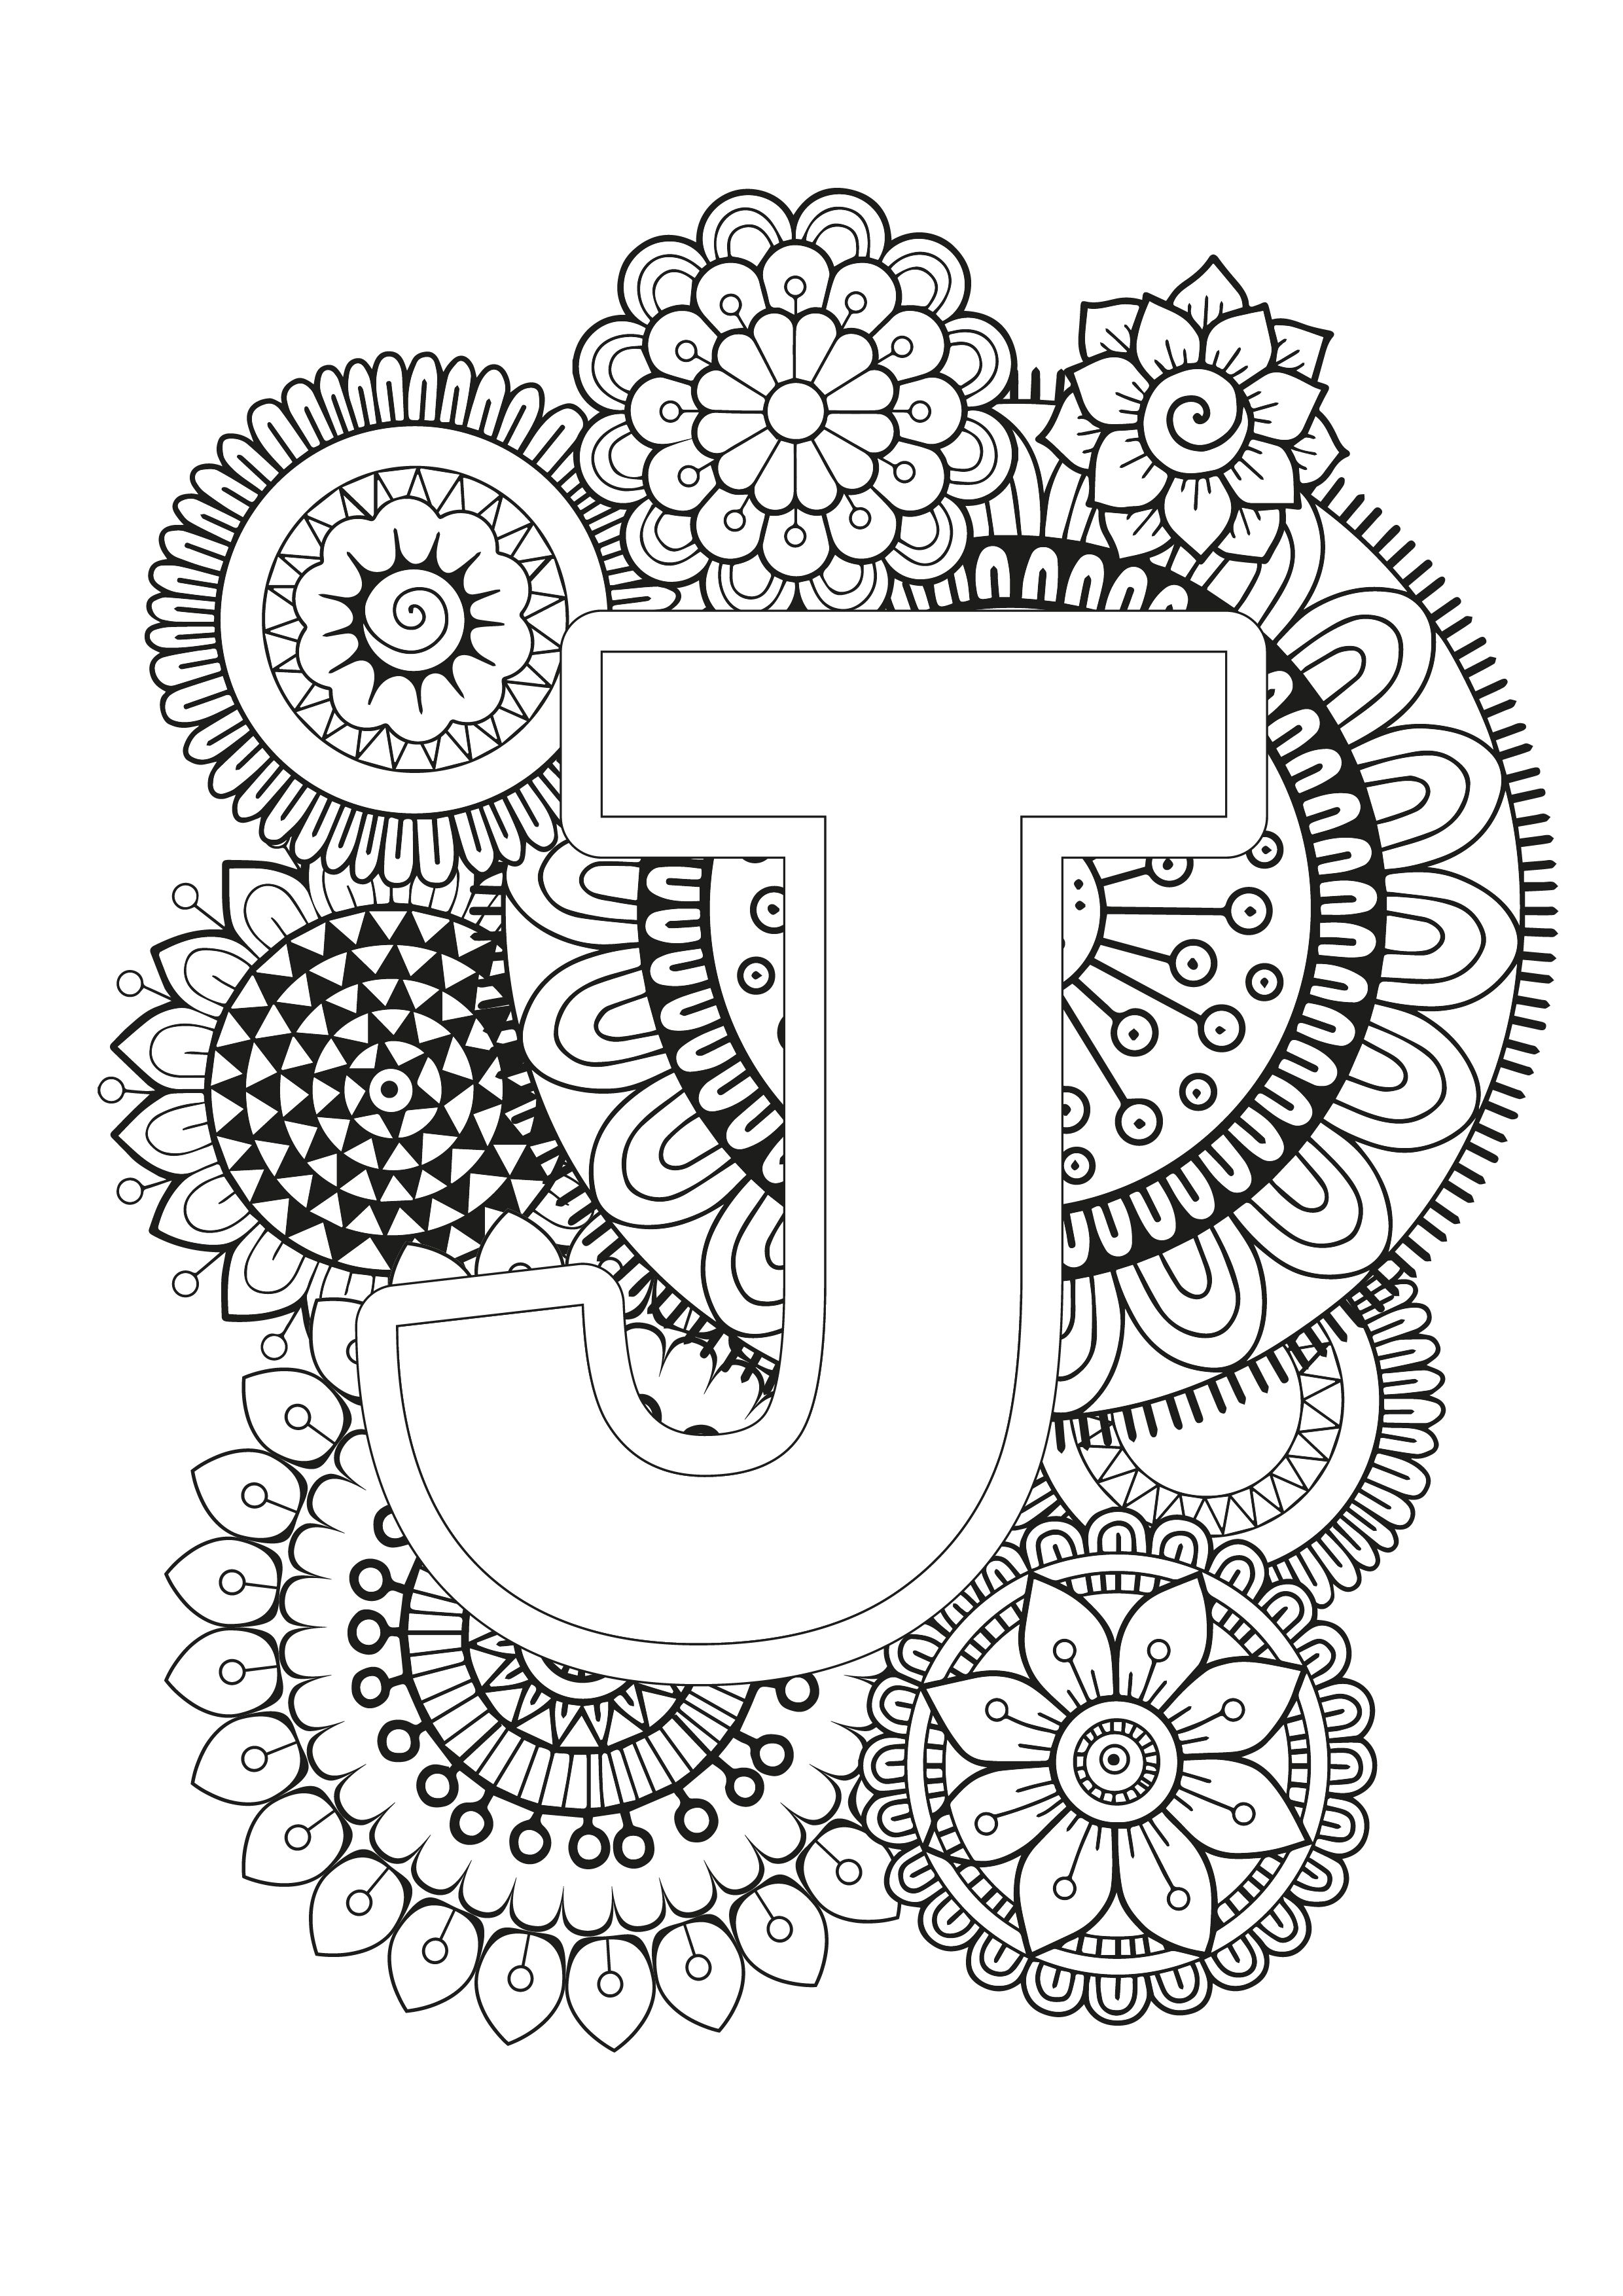 Mindfulness Coloring Page Alphabet Mandala Coloring Pages Cool Coloring Pages Abstract Coloring Pages